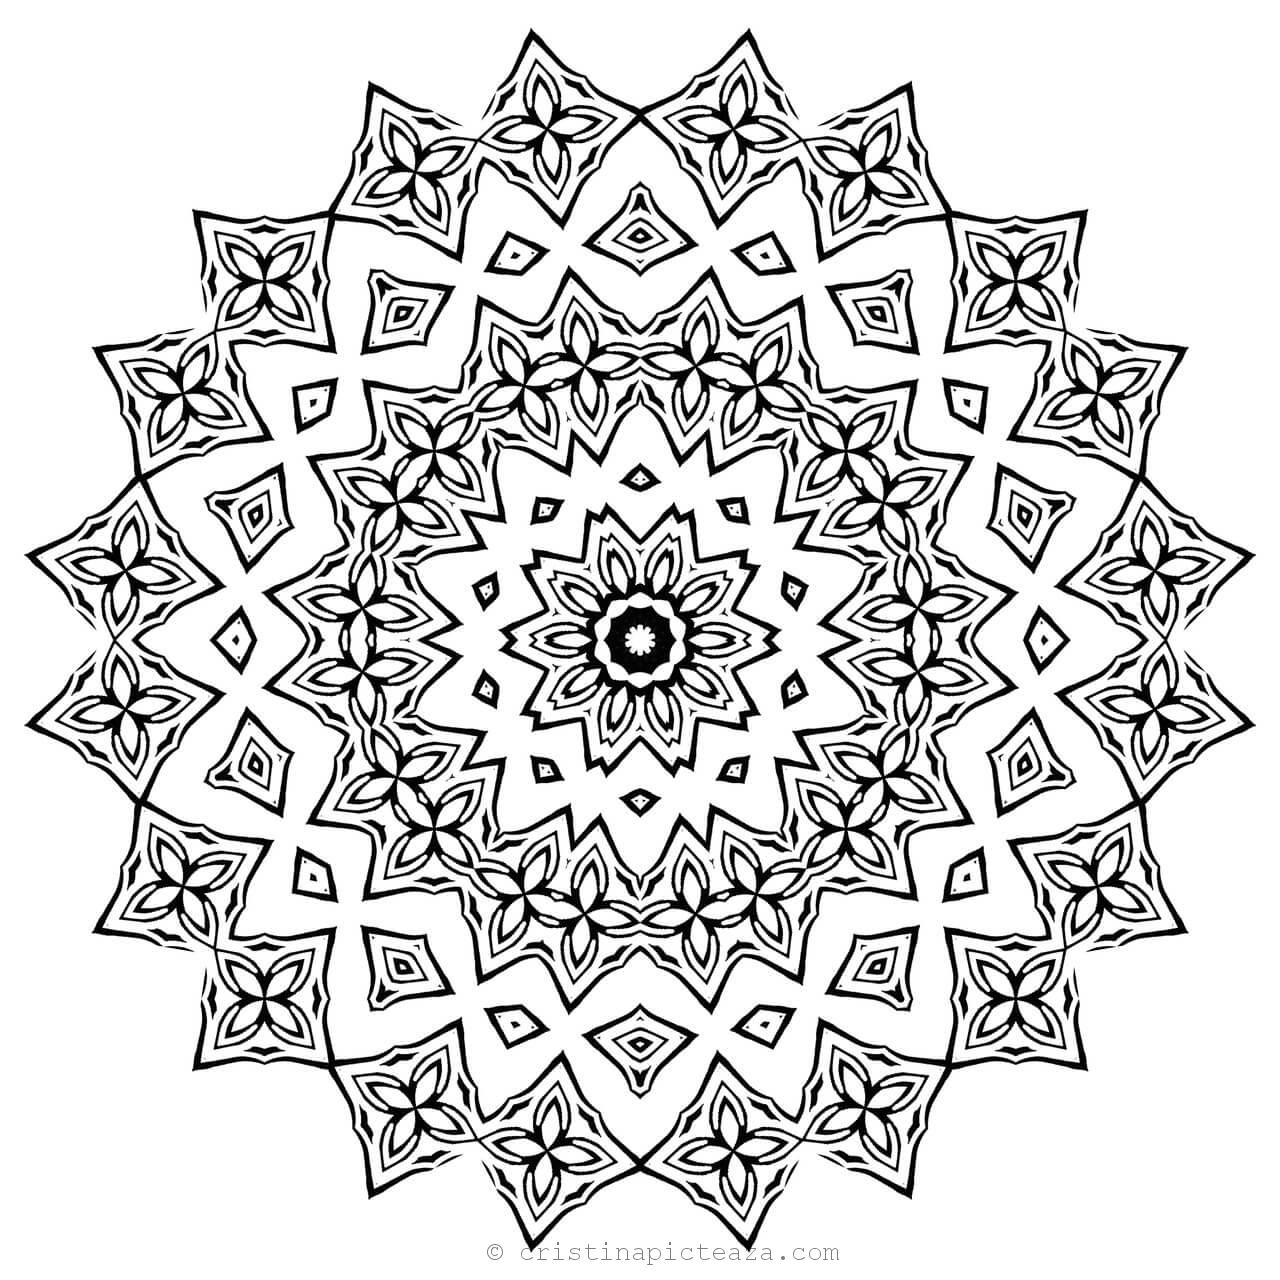 Mandala for Coloring - Cool Coloring pages for adults